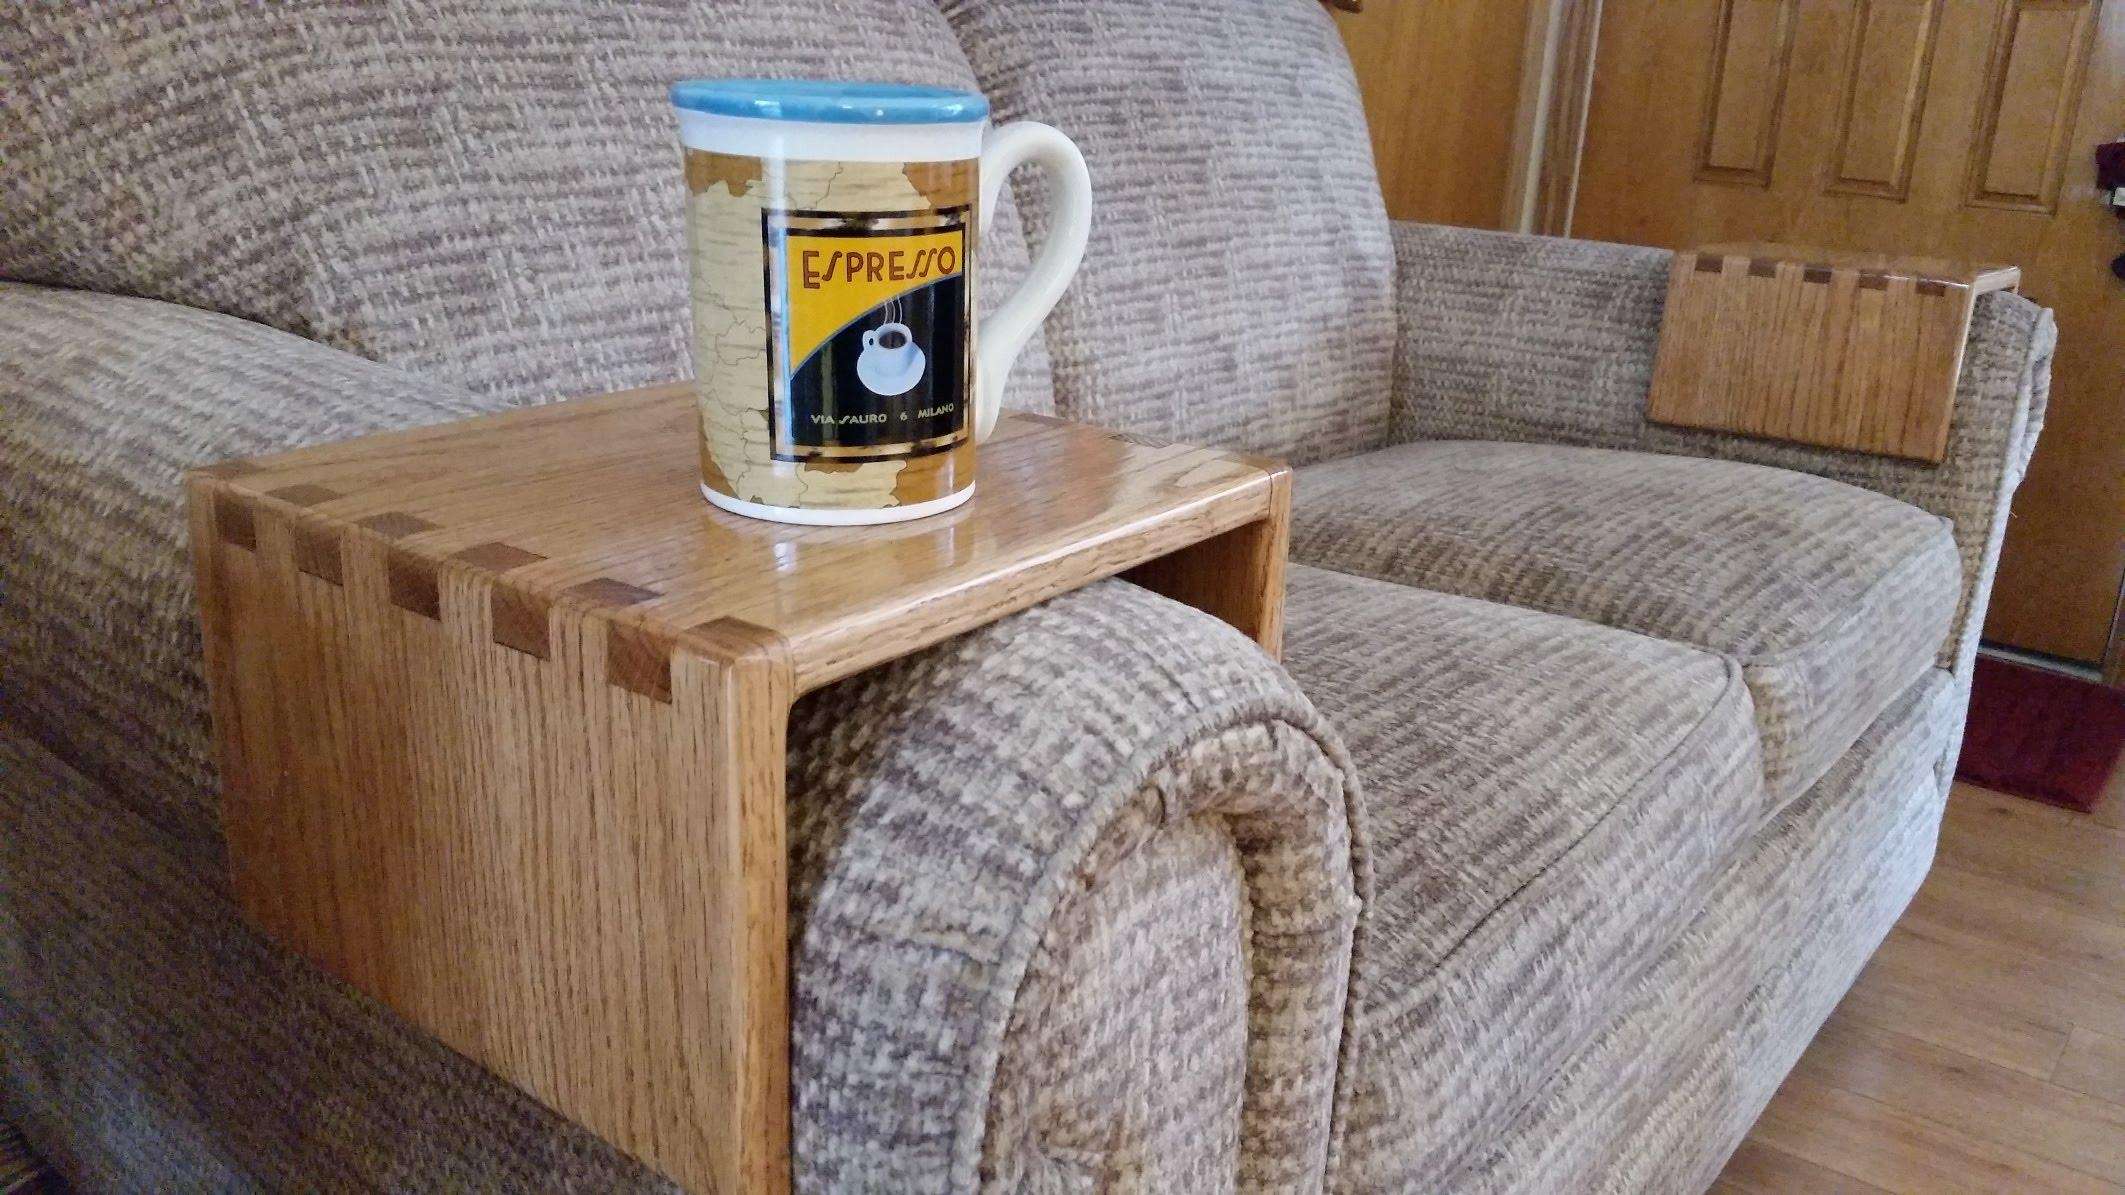 Diy – Sofa Drink Holder Using Simple Box Joints – Youtube Inside Sofa Drink Tables (View 4 of 20)